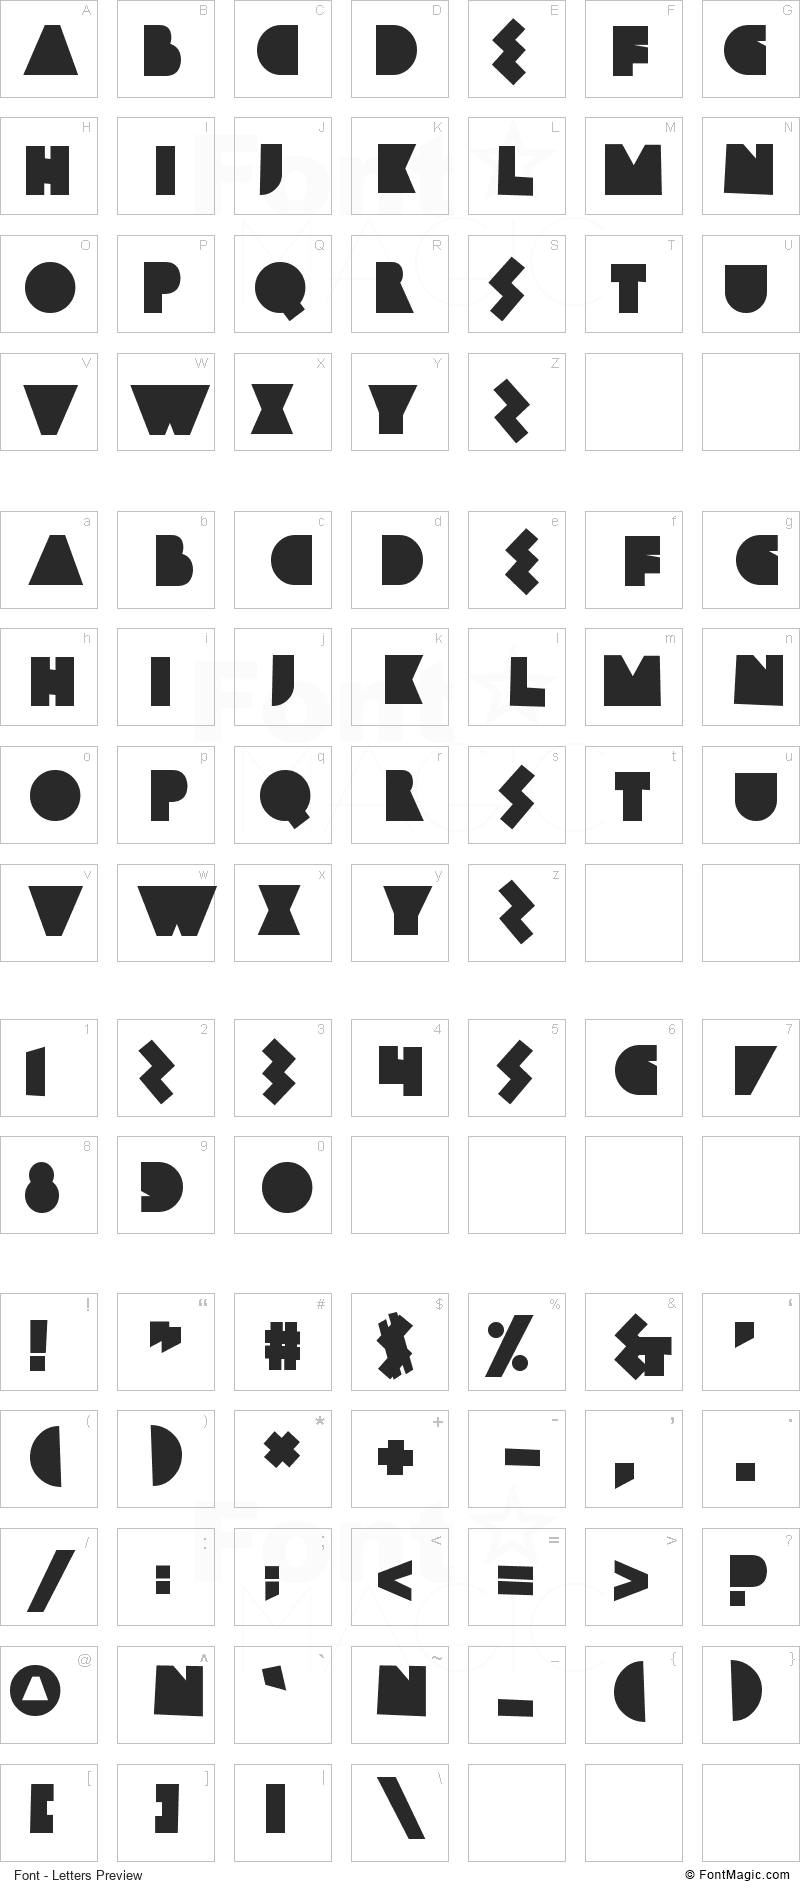 Bamboozler Font - All Latters Preview Chart